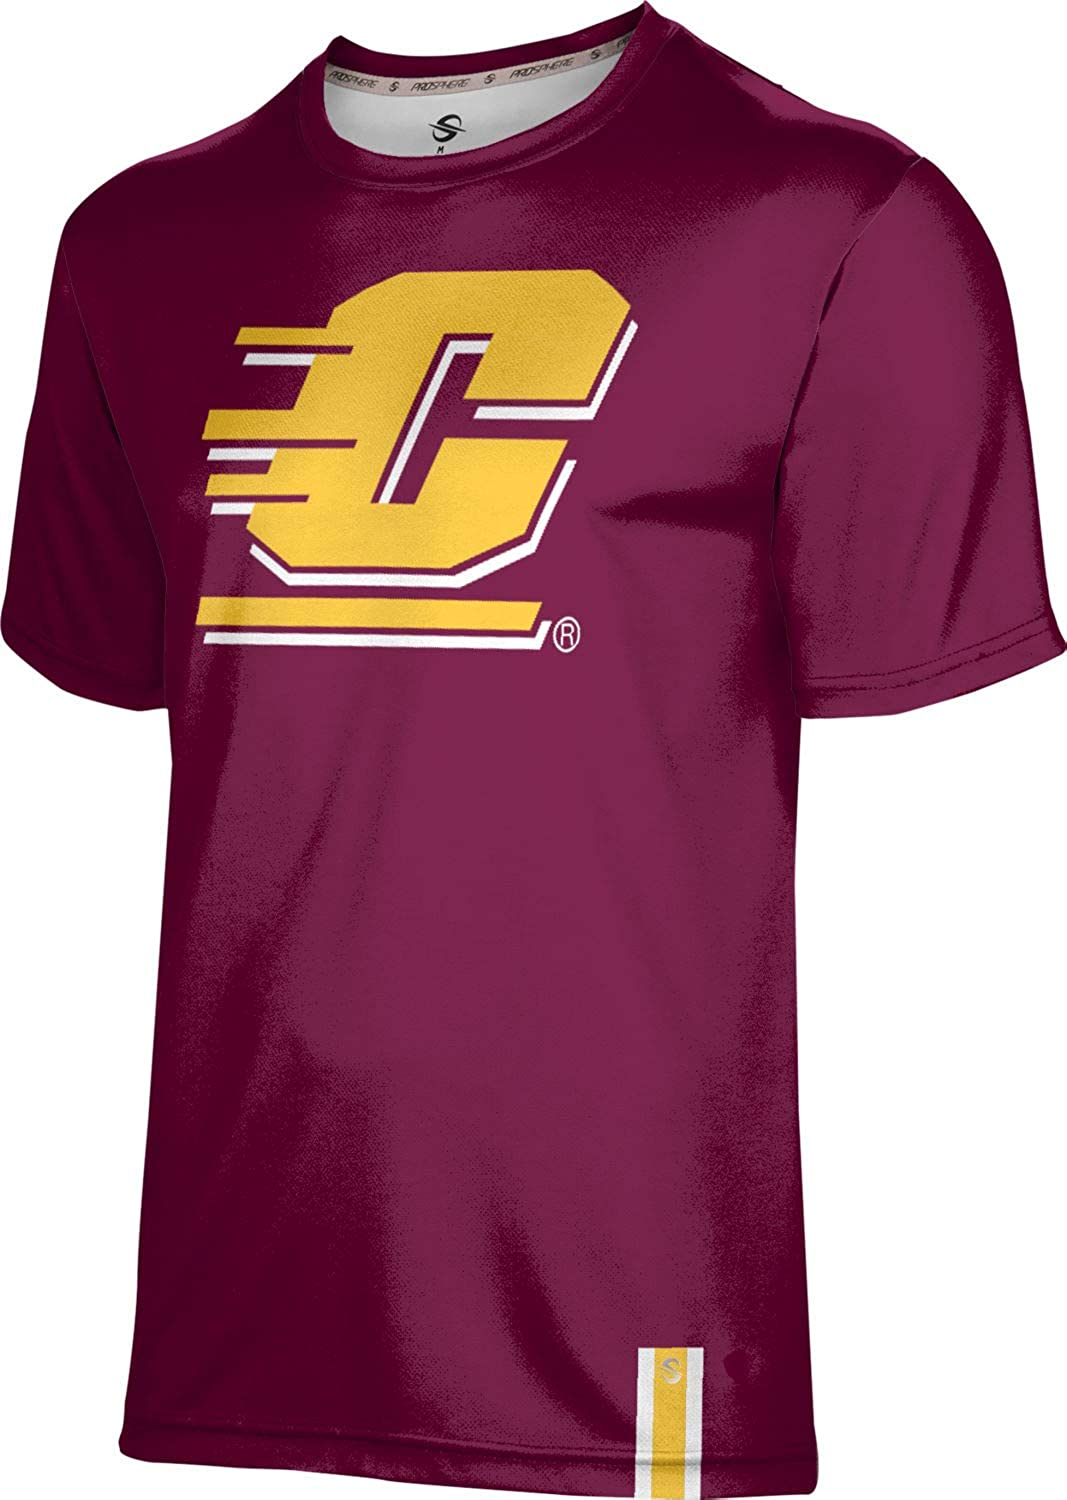 ProSphere Central Michigan University Performance Max 59% OFF Men's T-Shirt Max 56% OFF